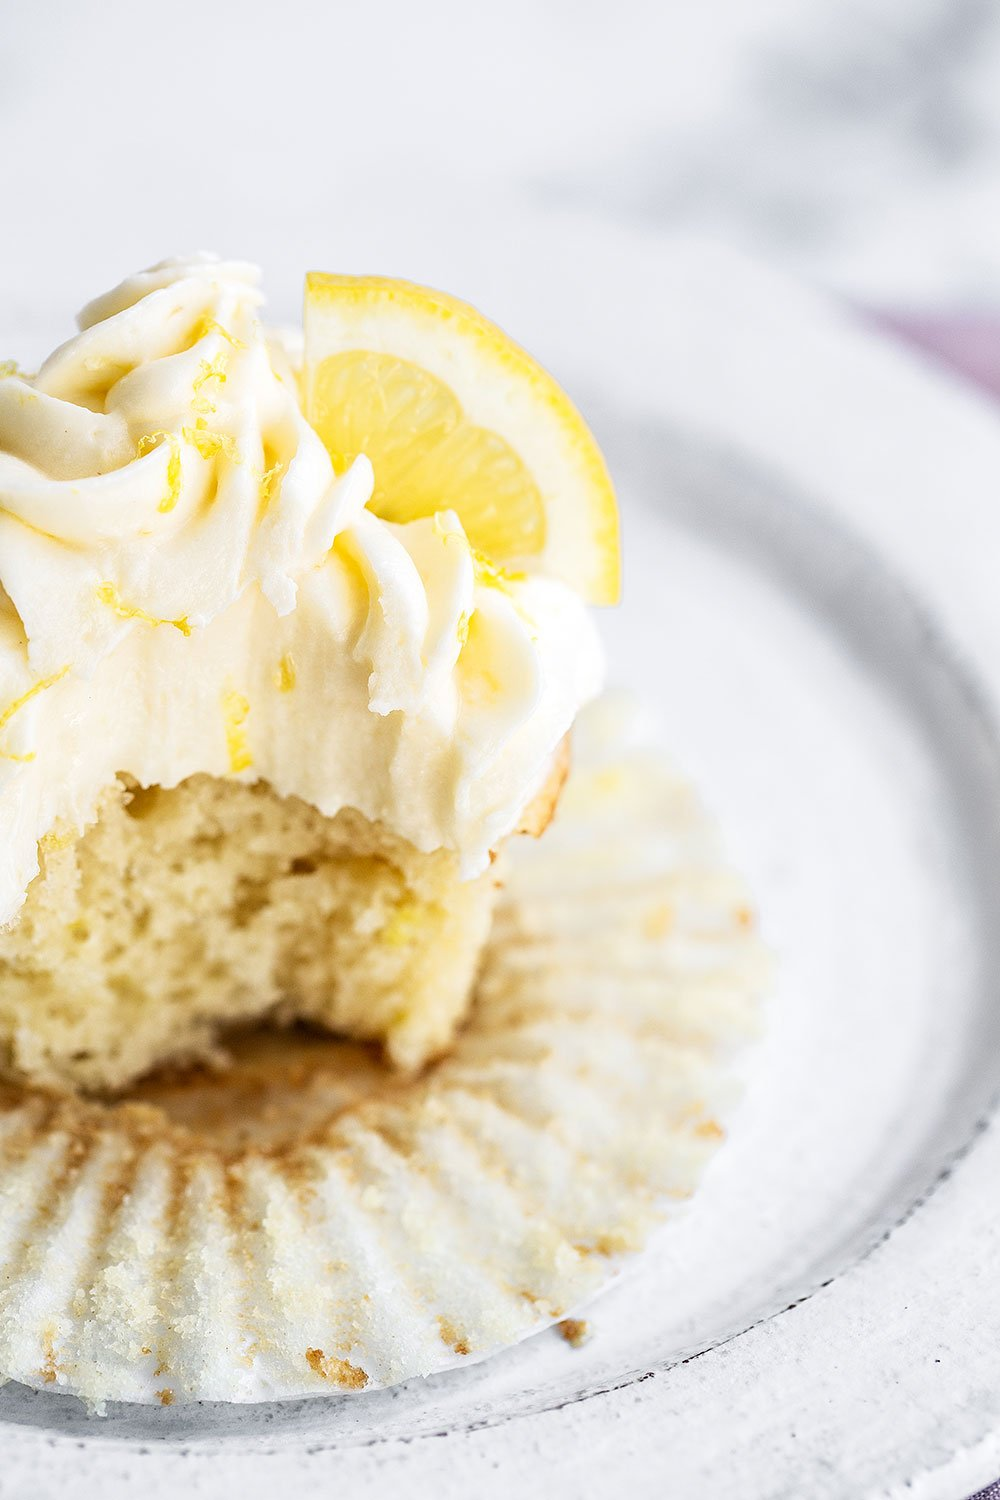 Lemon cupcake on plate with bite taken out